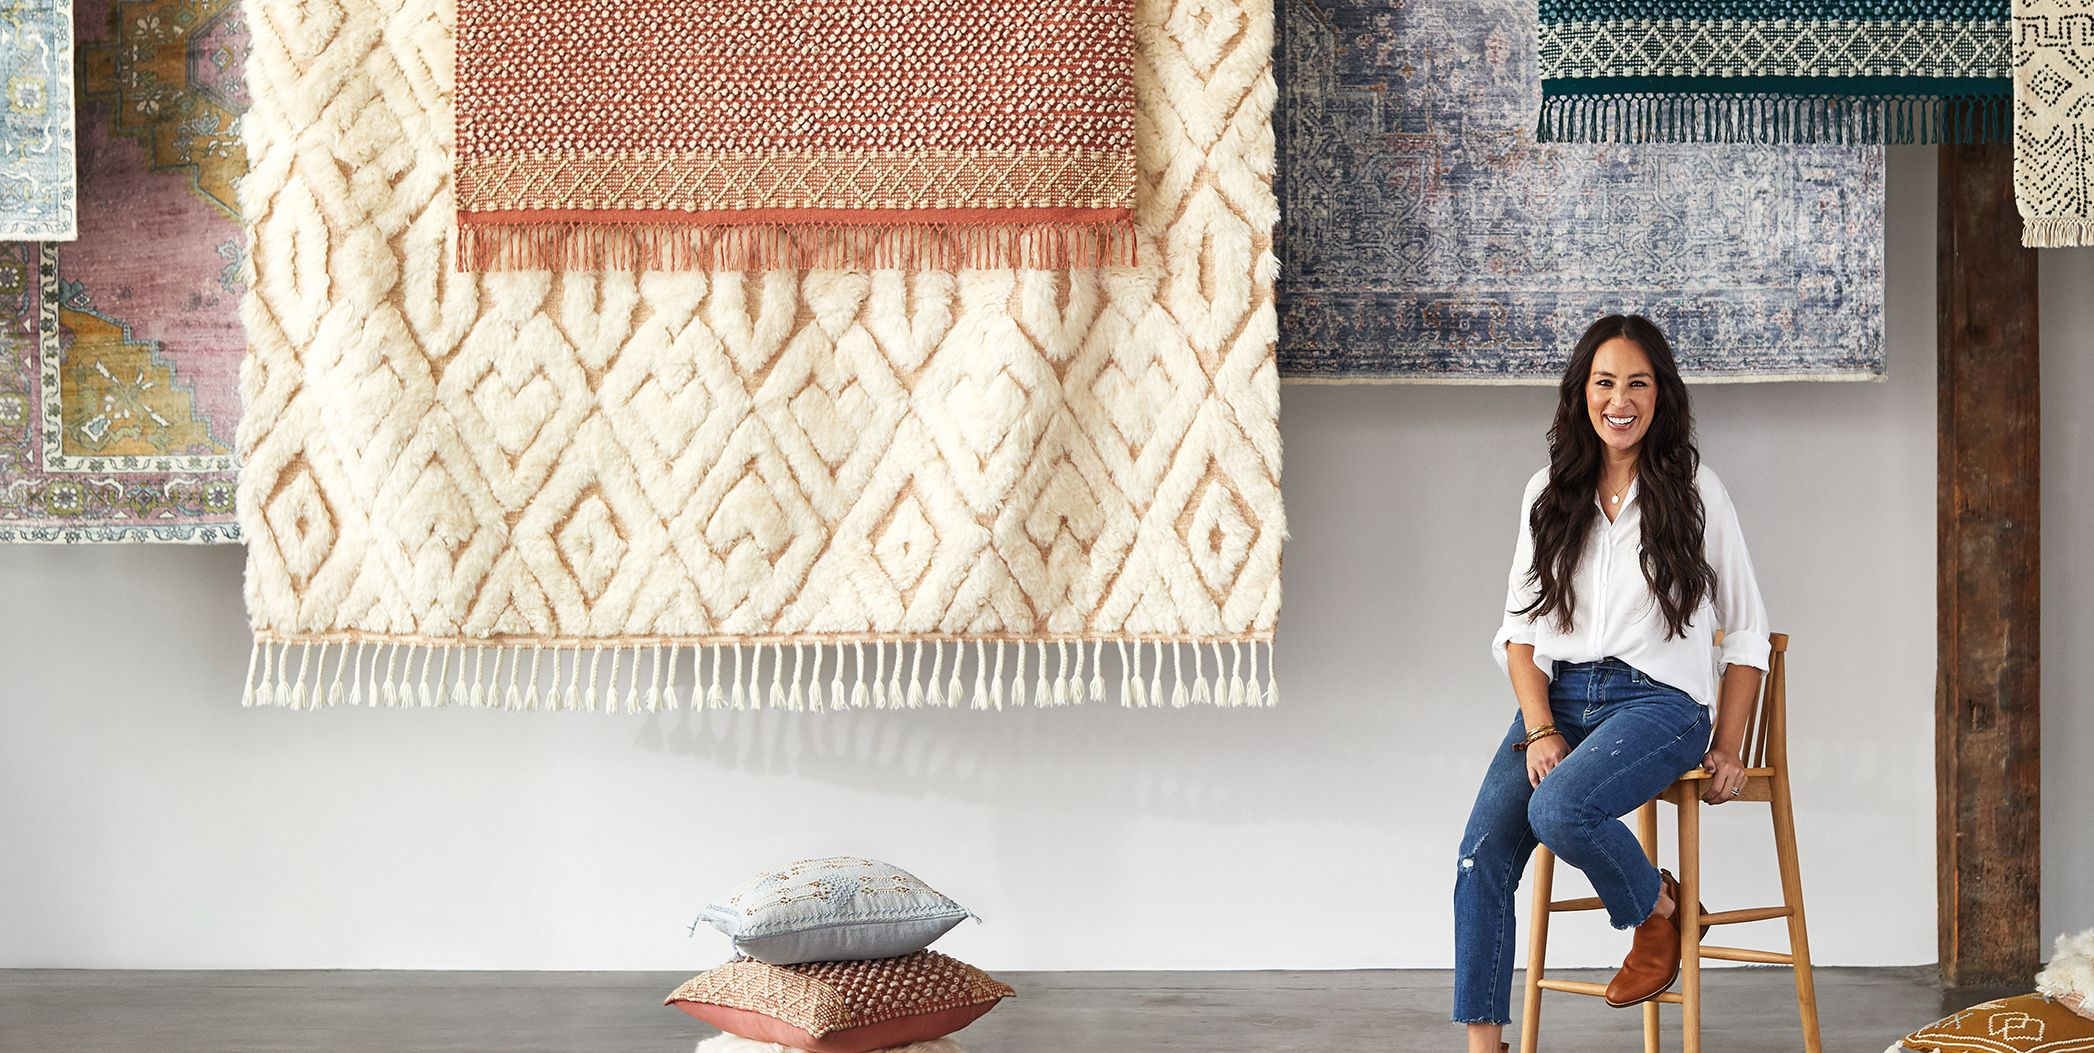 Joanna Gaines' New Home Collection for Anthropologie is Here